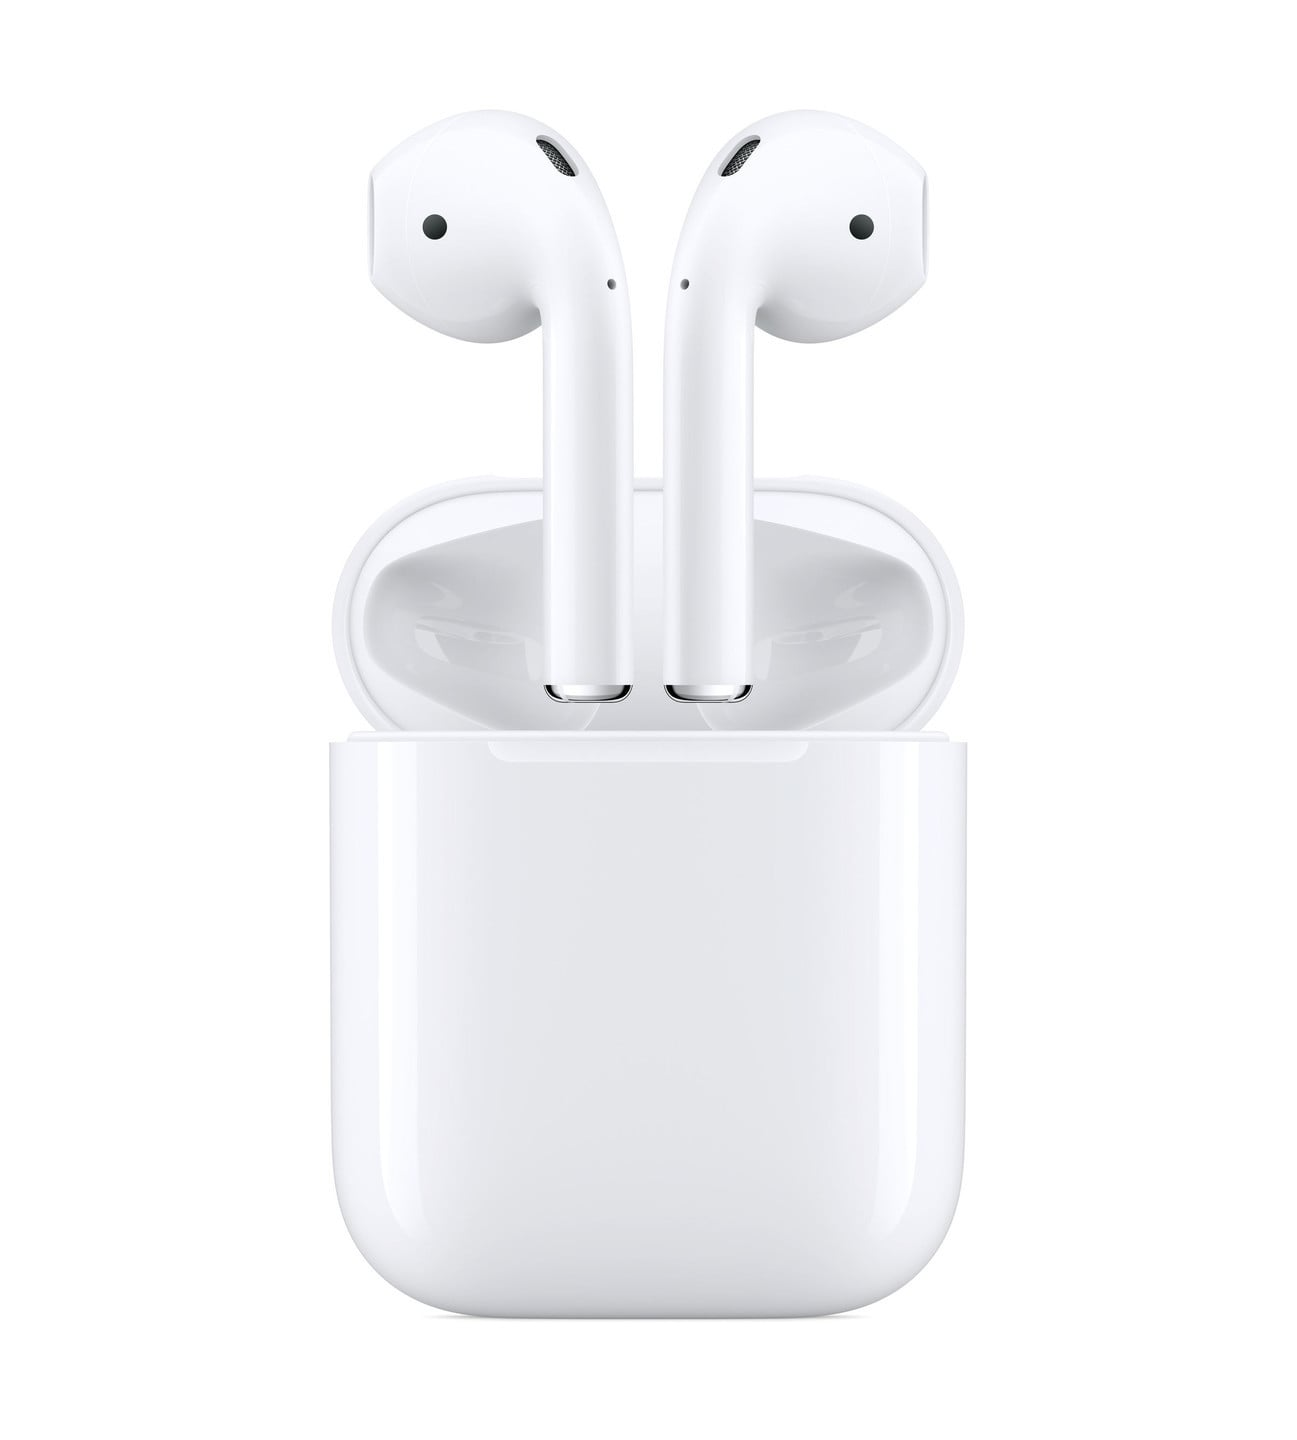 Buy Apple AirPods